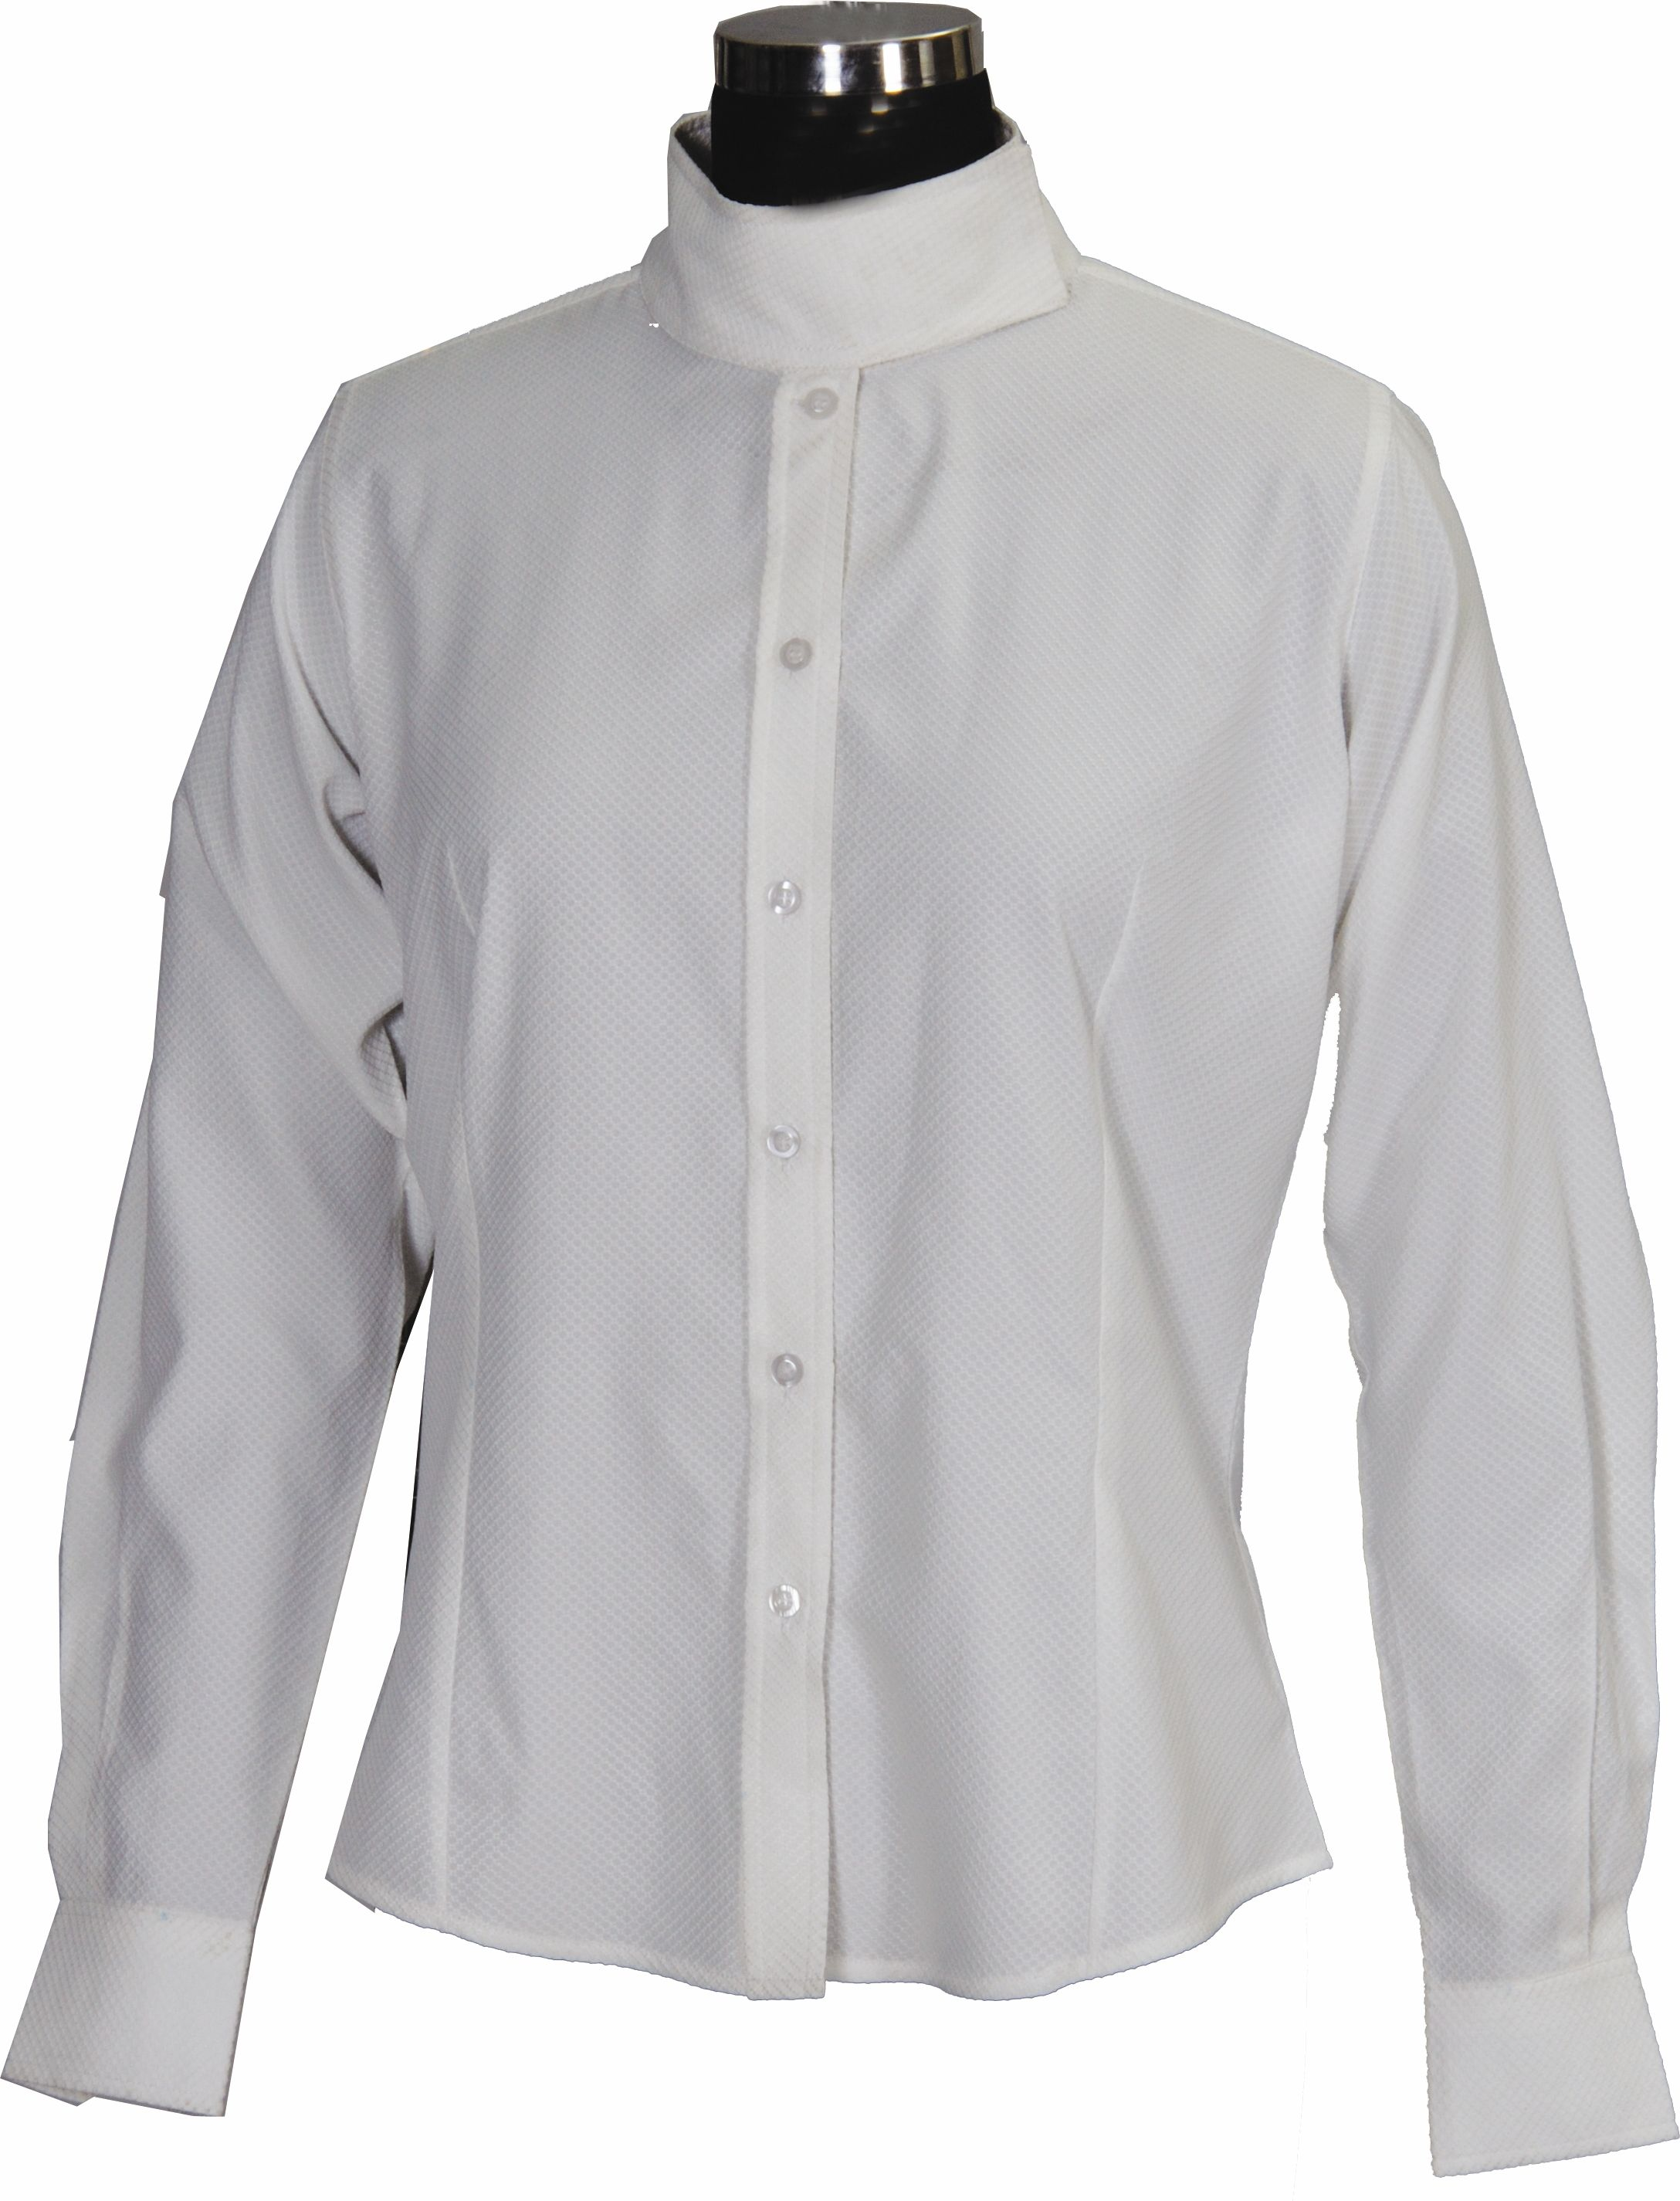 Tuffrider Ladies Zoe CoolMax Show Shirt